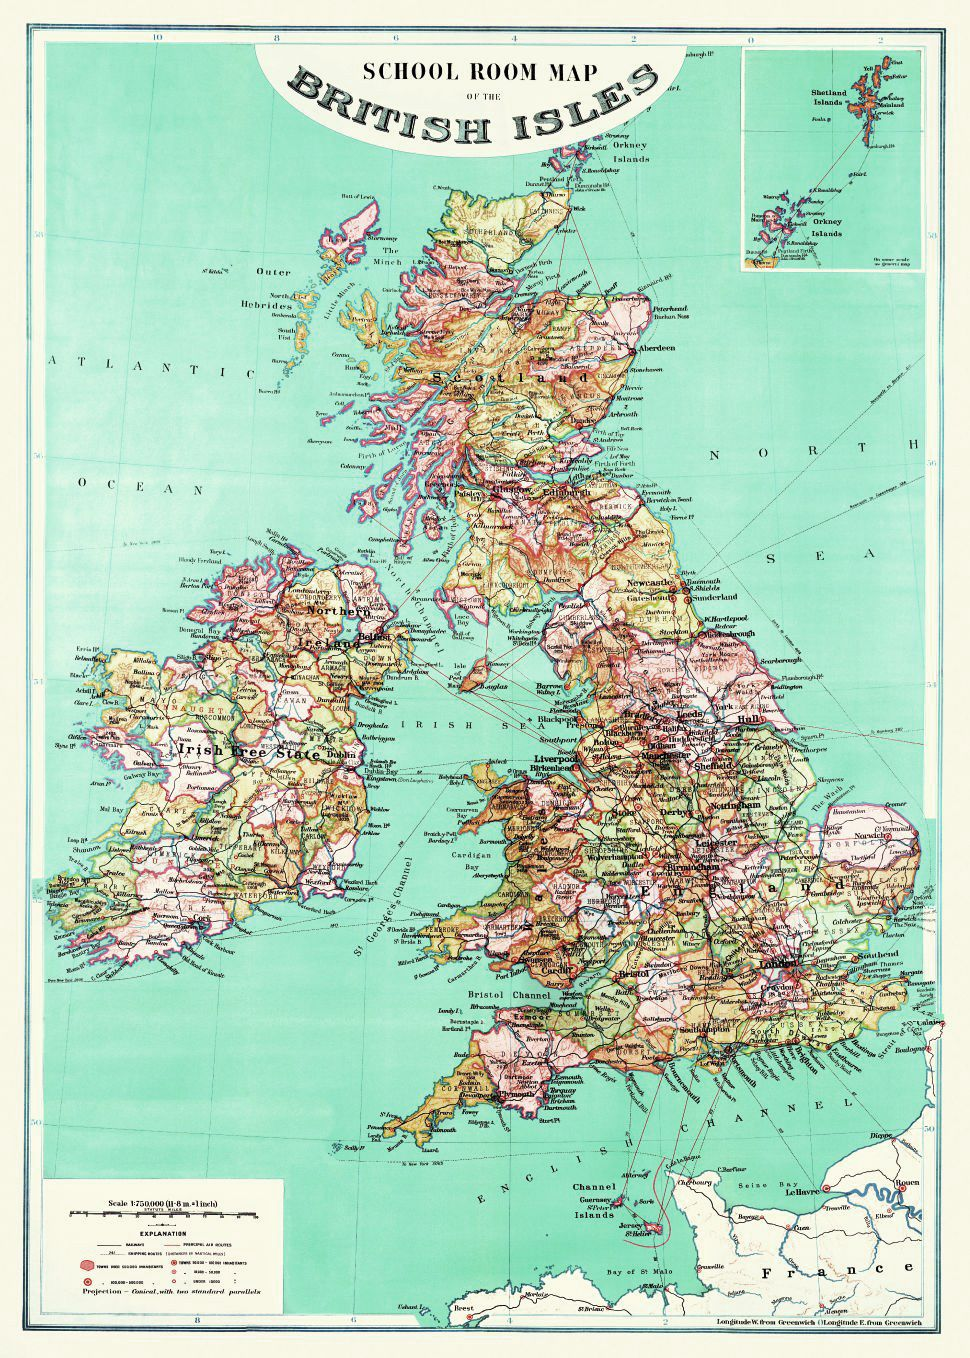 FINE-ART-PRINT-British-Isles-Map-Poster-Paper-or-Canvas-for-home-decor